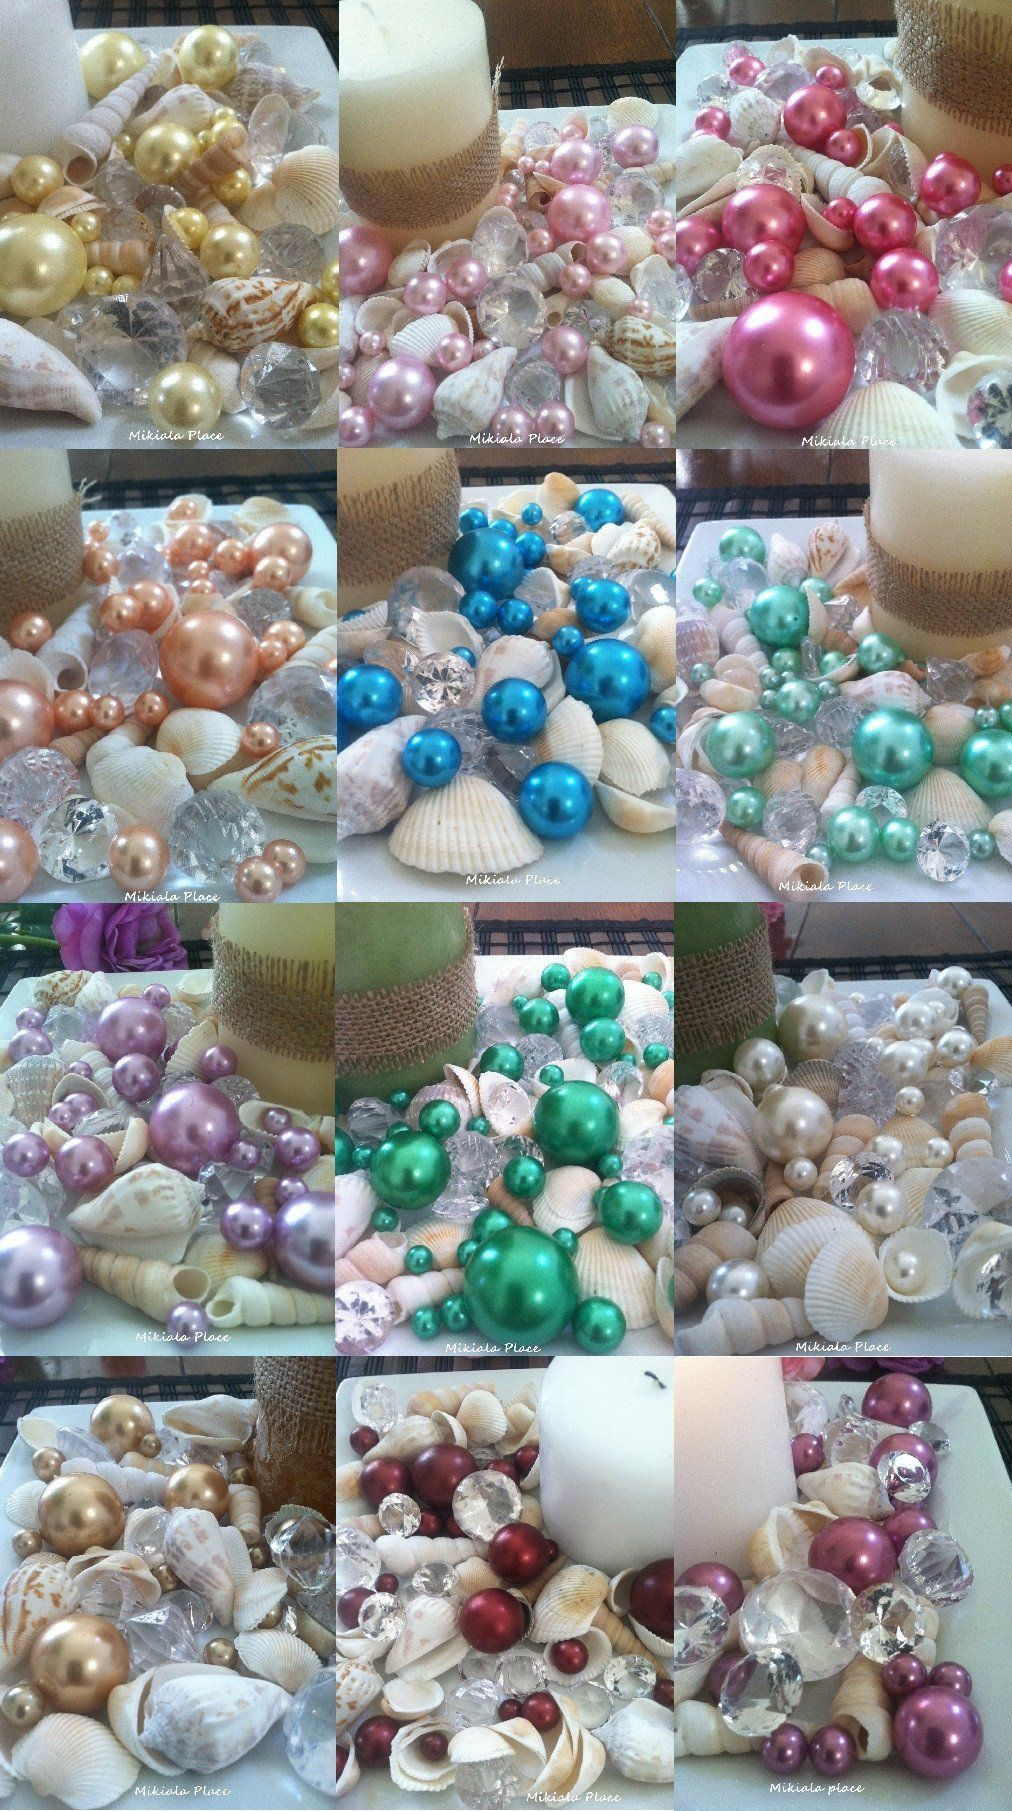 teal filler buy decor vase wholesale fillers w bulk pearl centerpiece elegant beads products faux